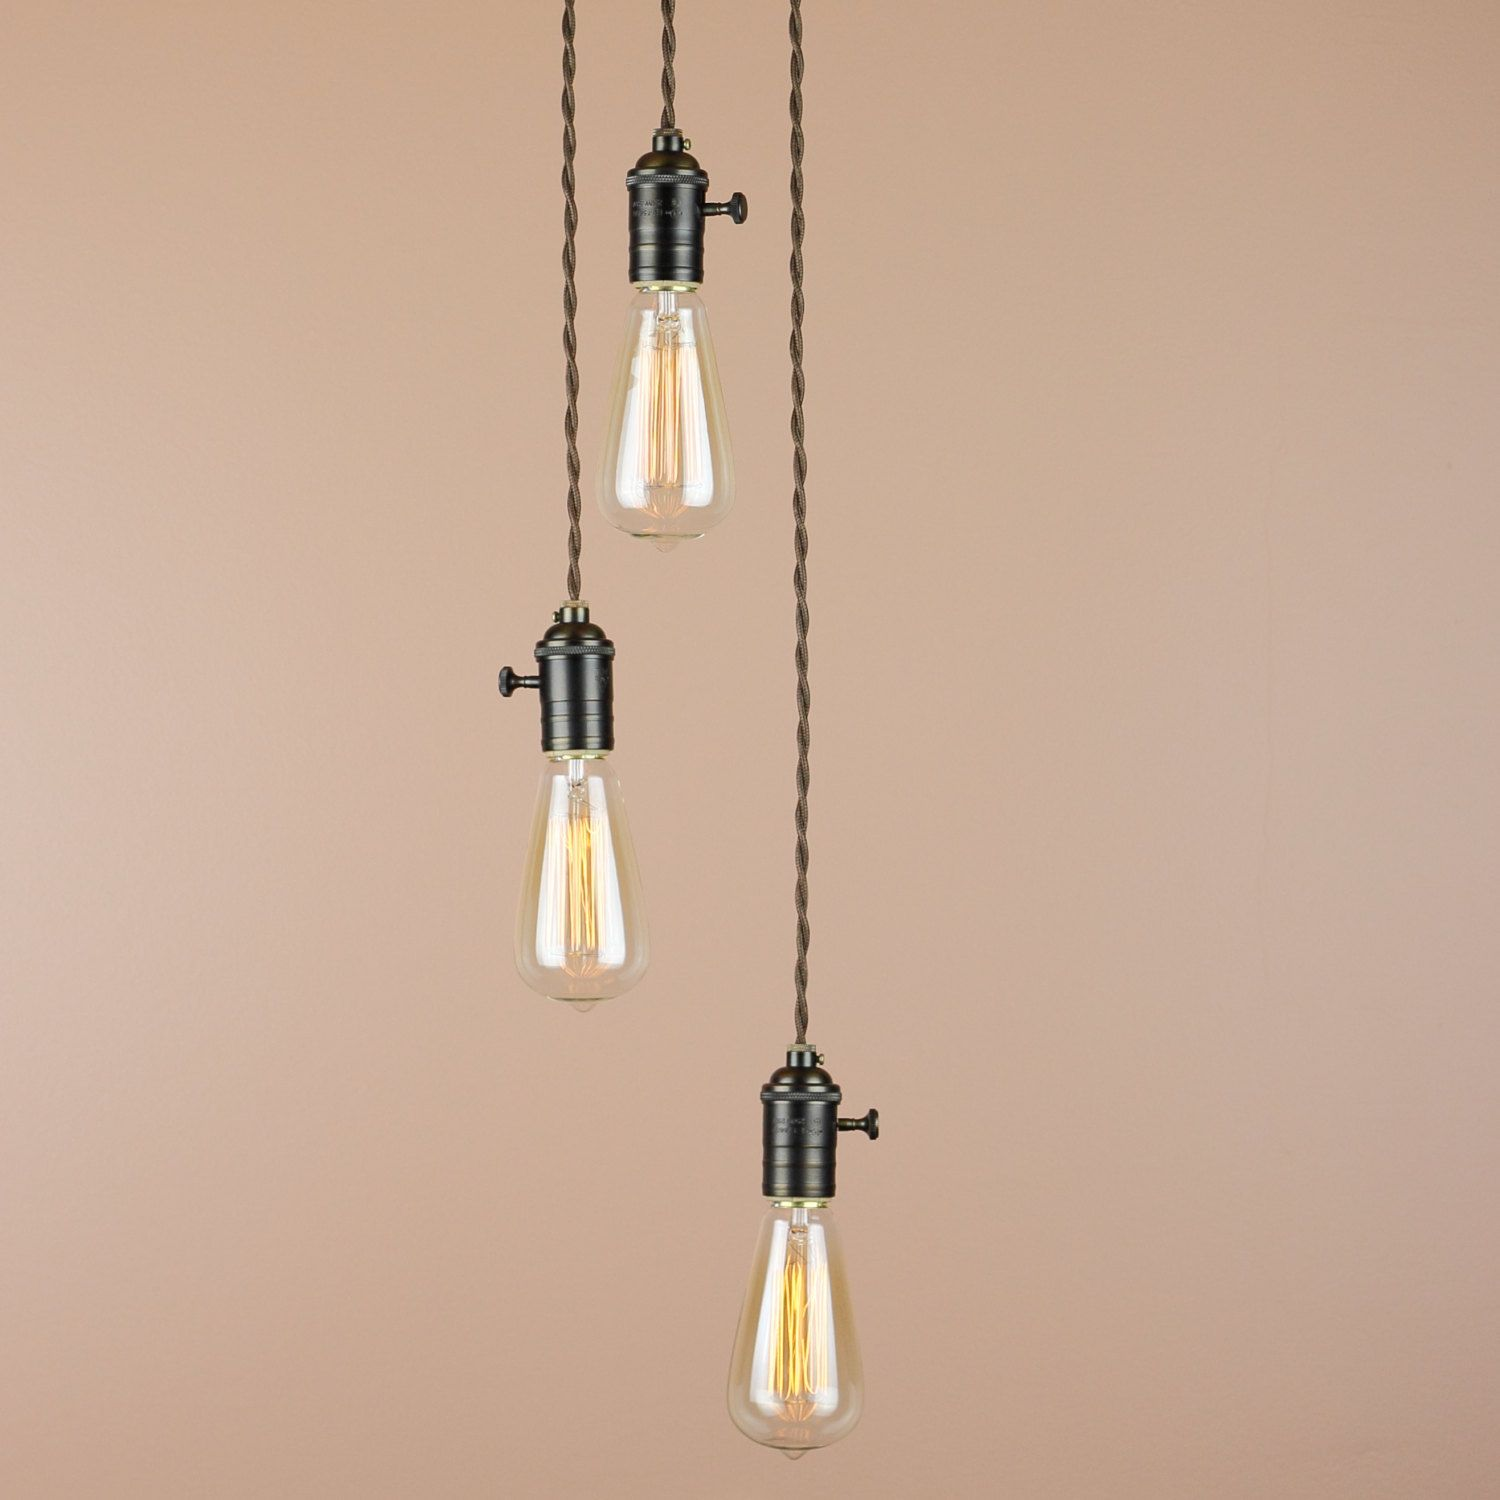 cables plumen original pendant fbx cable bar lamp with model obj furniture bulbs light max bulb models